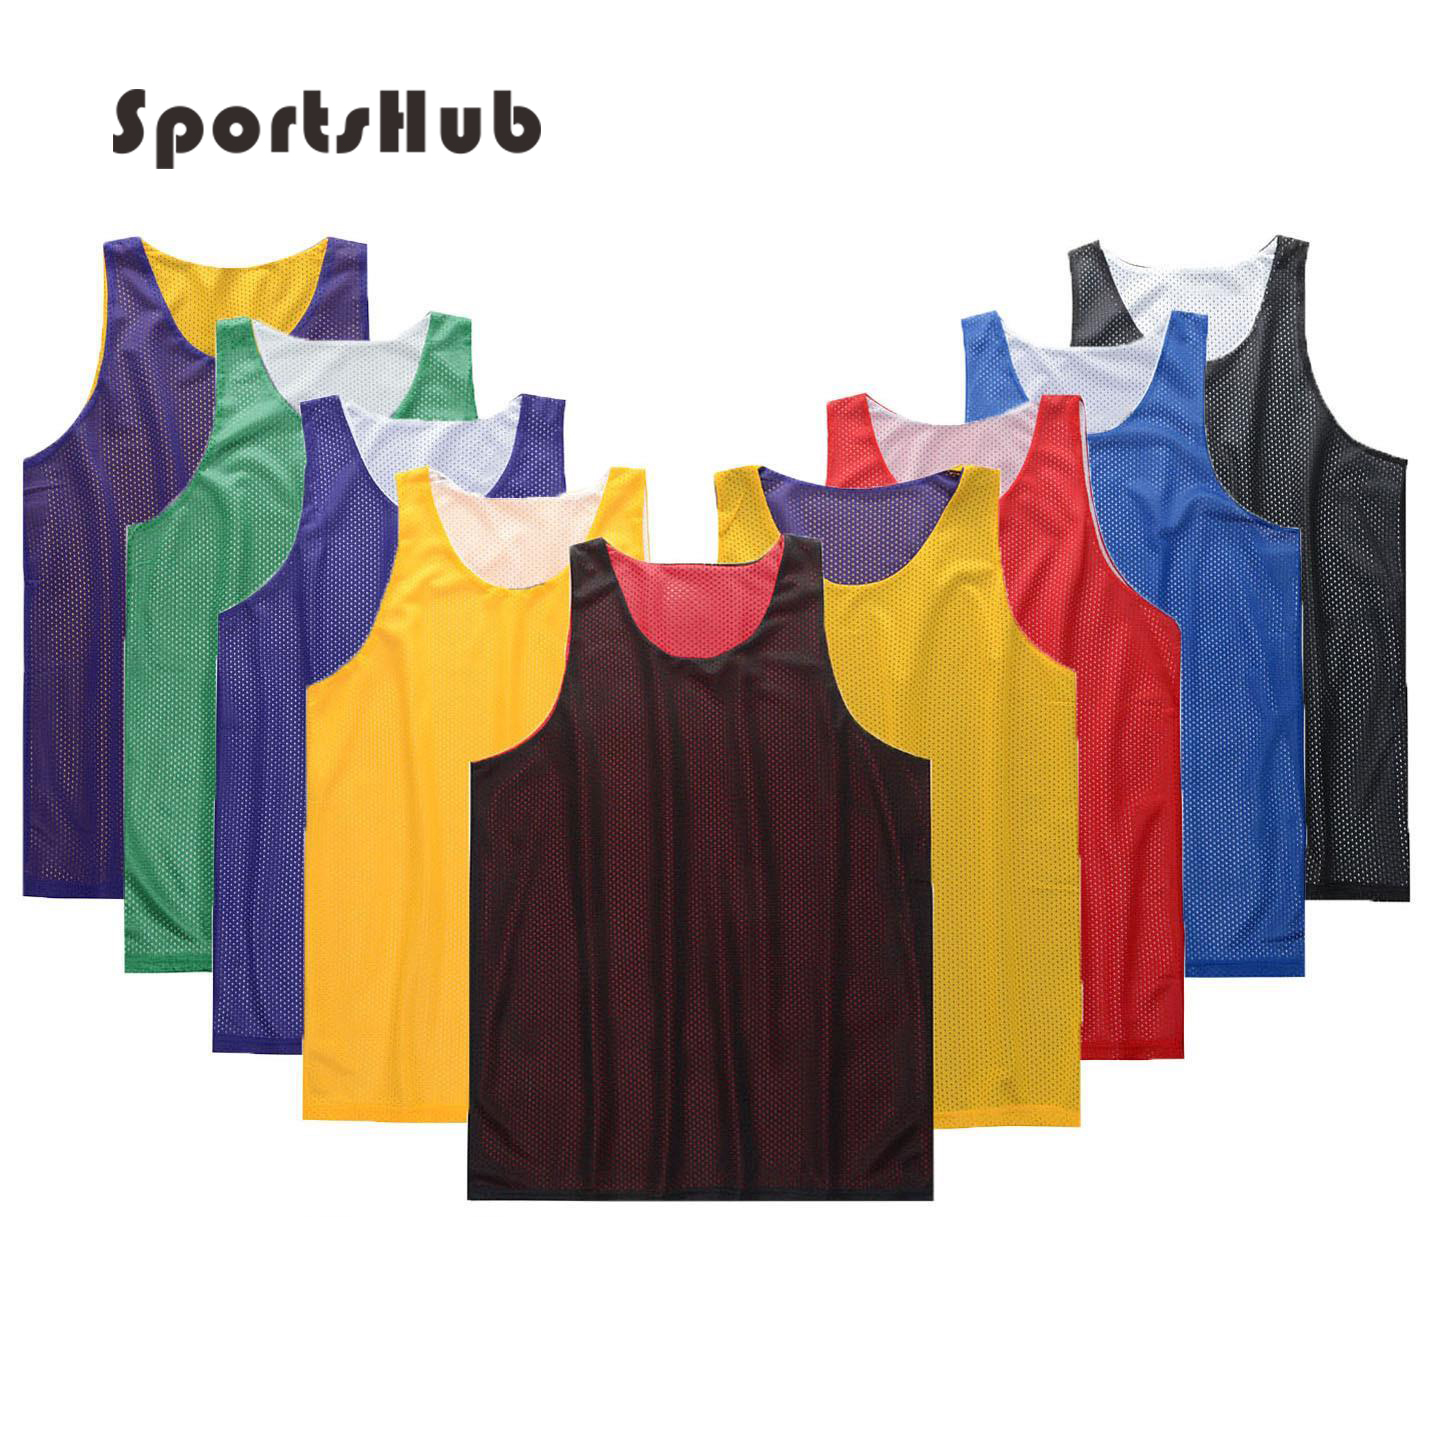 SPORTSHUB Anti-pilling Kaus Basket Bernapas Polyester Anti-wrinkle Universitas Basketball Jerseys Disesuaikan Cetakan SAA0003